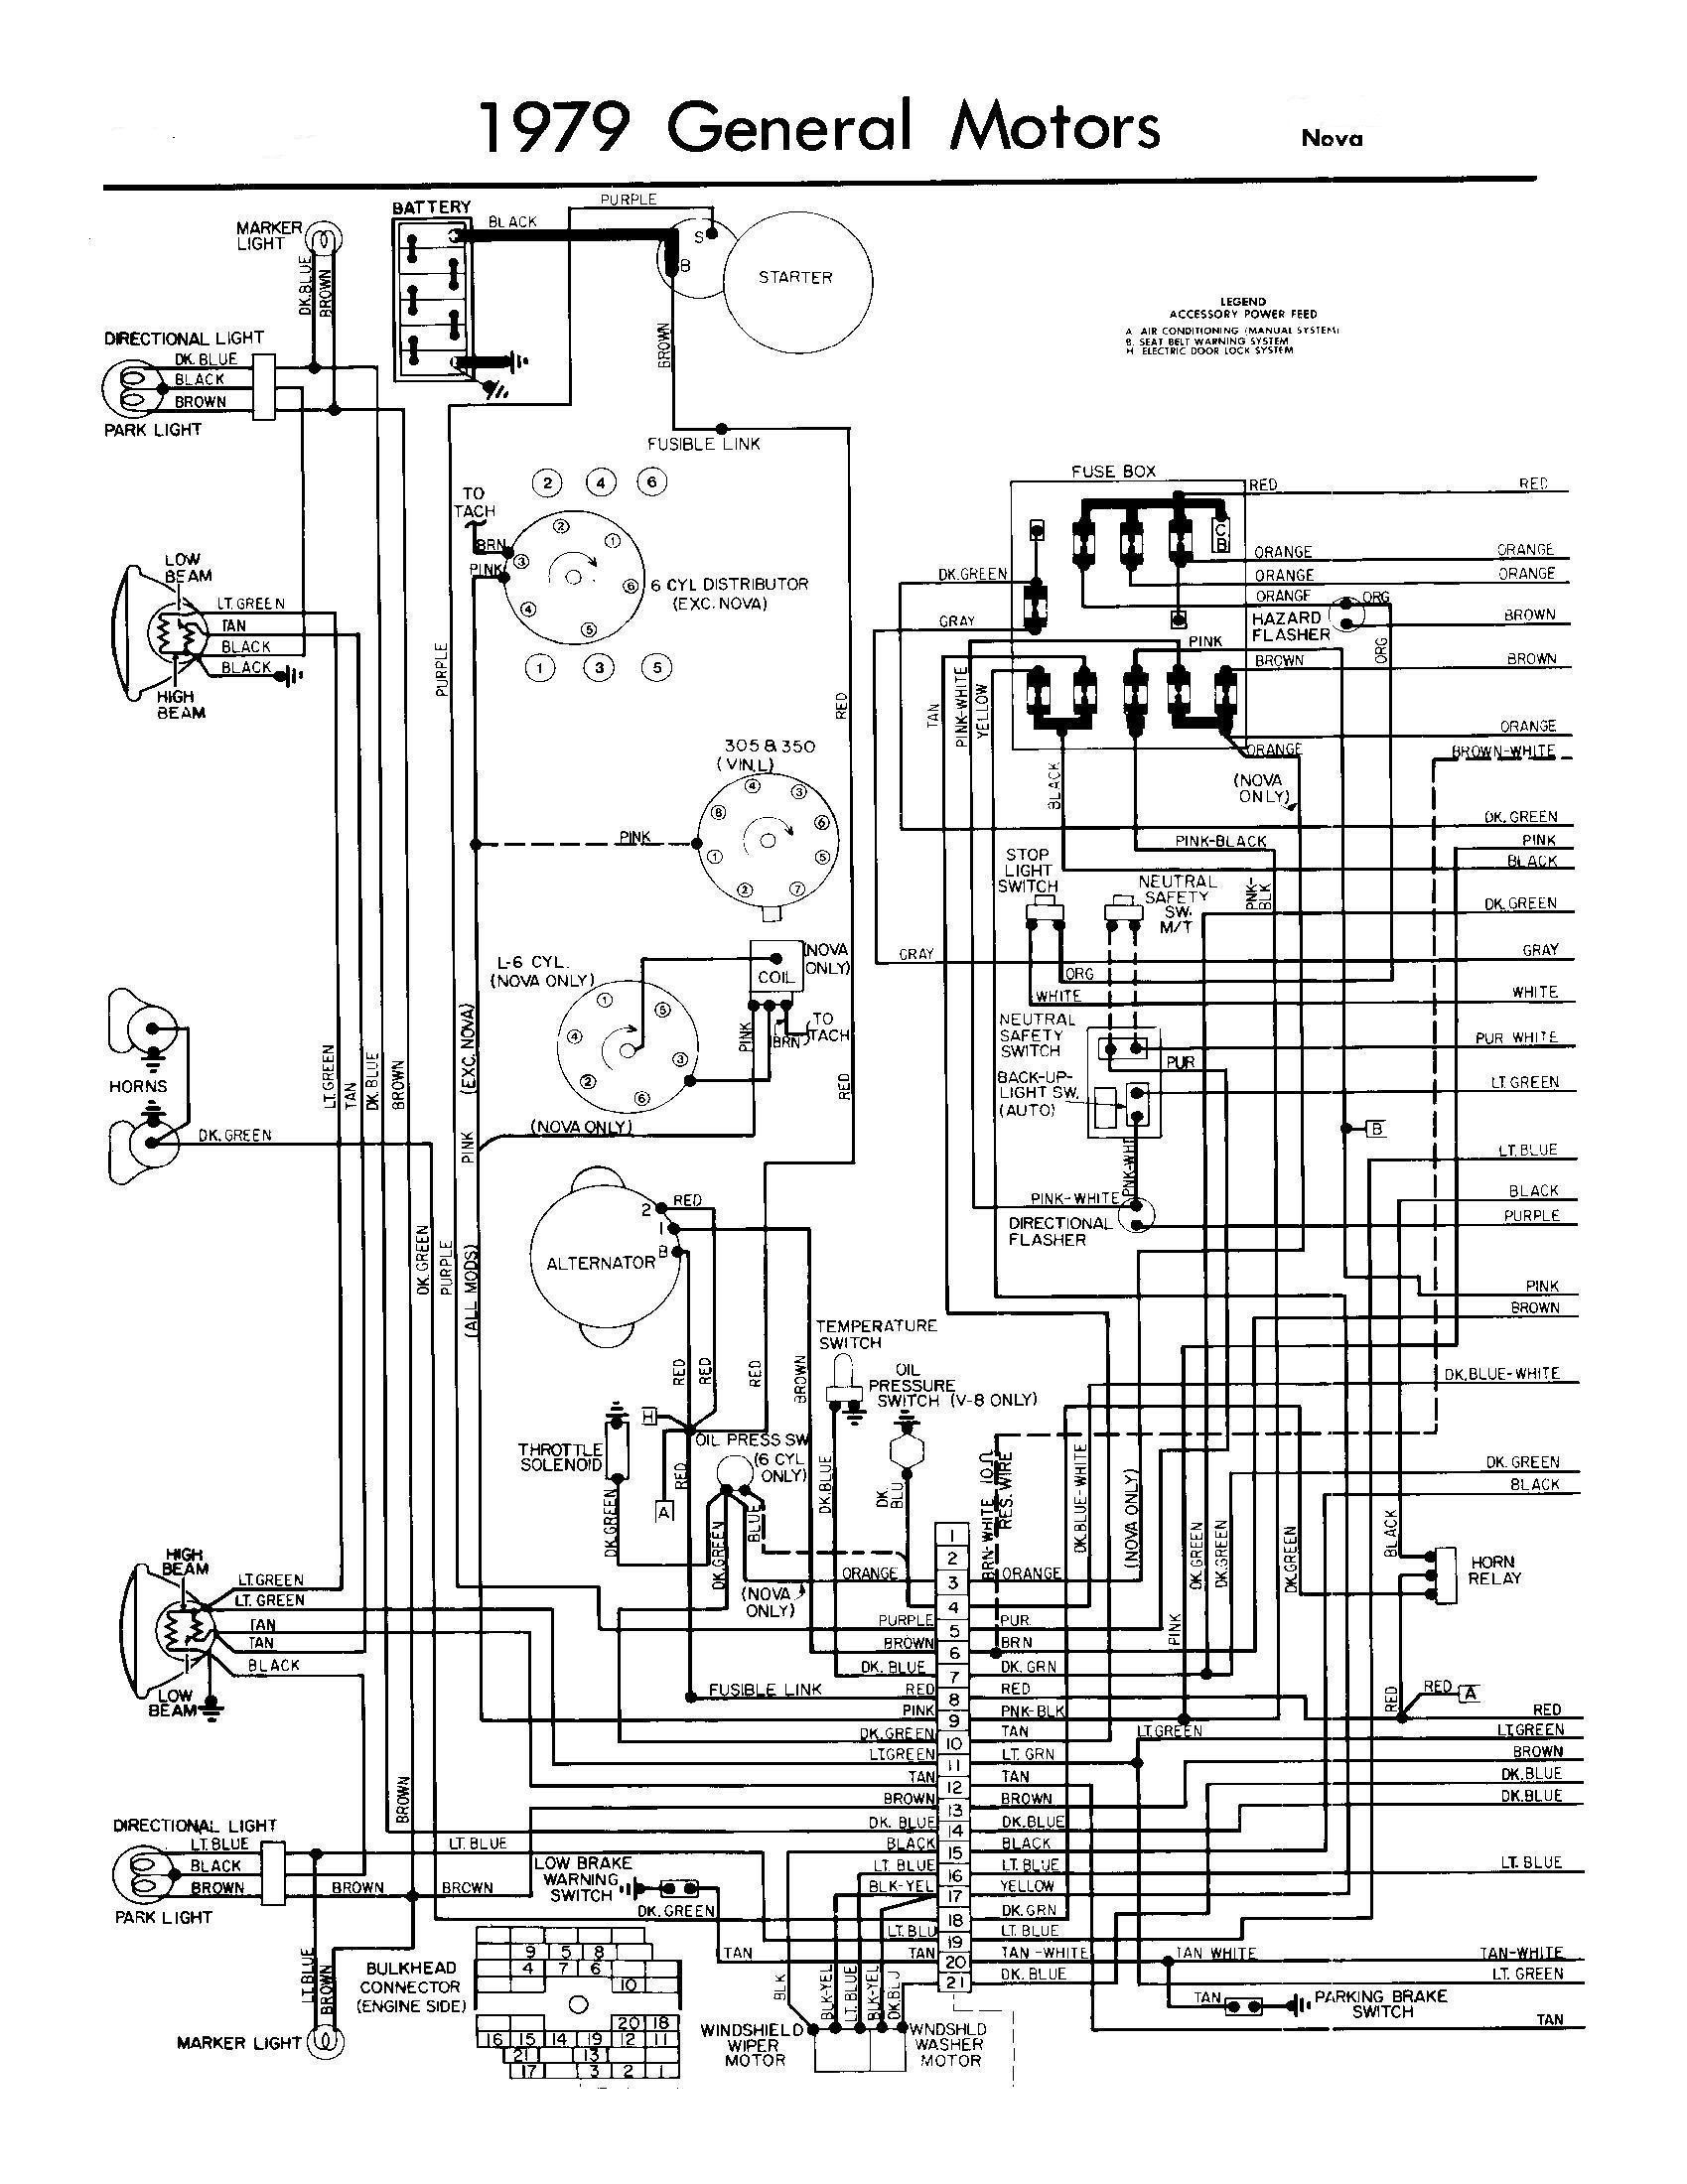 gm starter wiring diagram free download schematic explore rh webwiringdiagram today 1972 Chevrolet Wiring Diagram 1972 Corvette Wiring Diagram